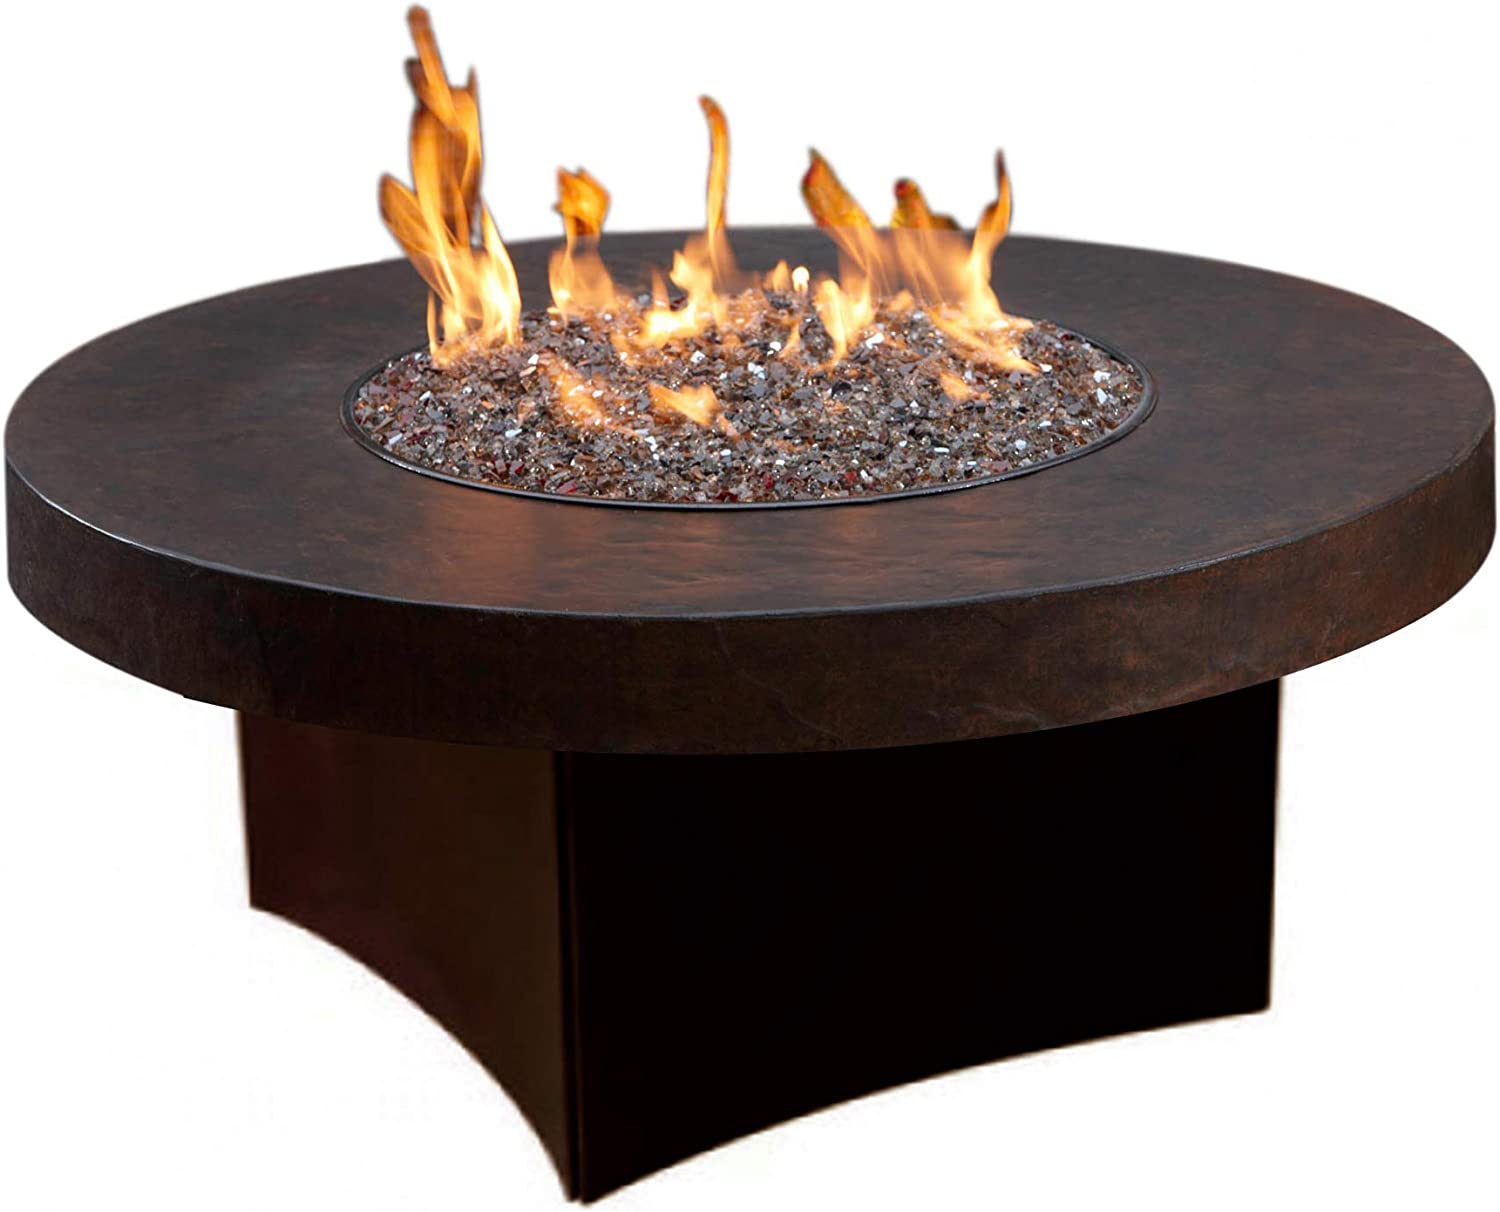 Amazon Com Oriflamme Outdoor Savanna Stone Gas Fire Pit Table Round Brown 38 Table Top Propane Garden Outdoor